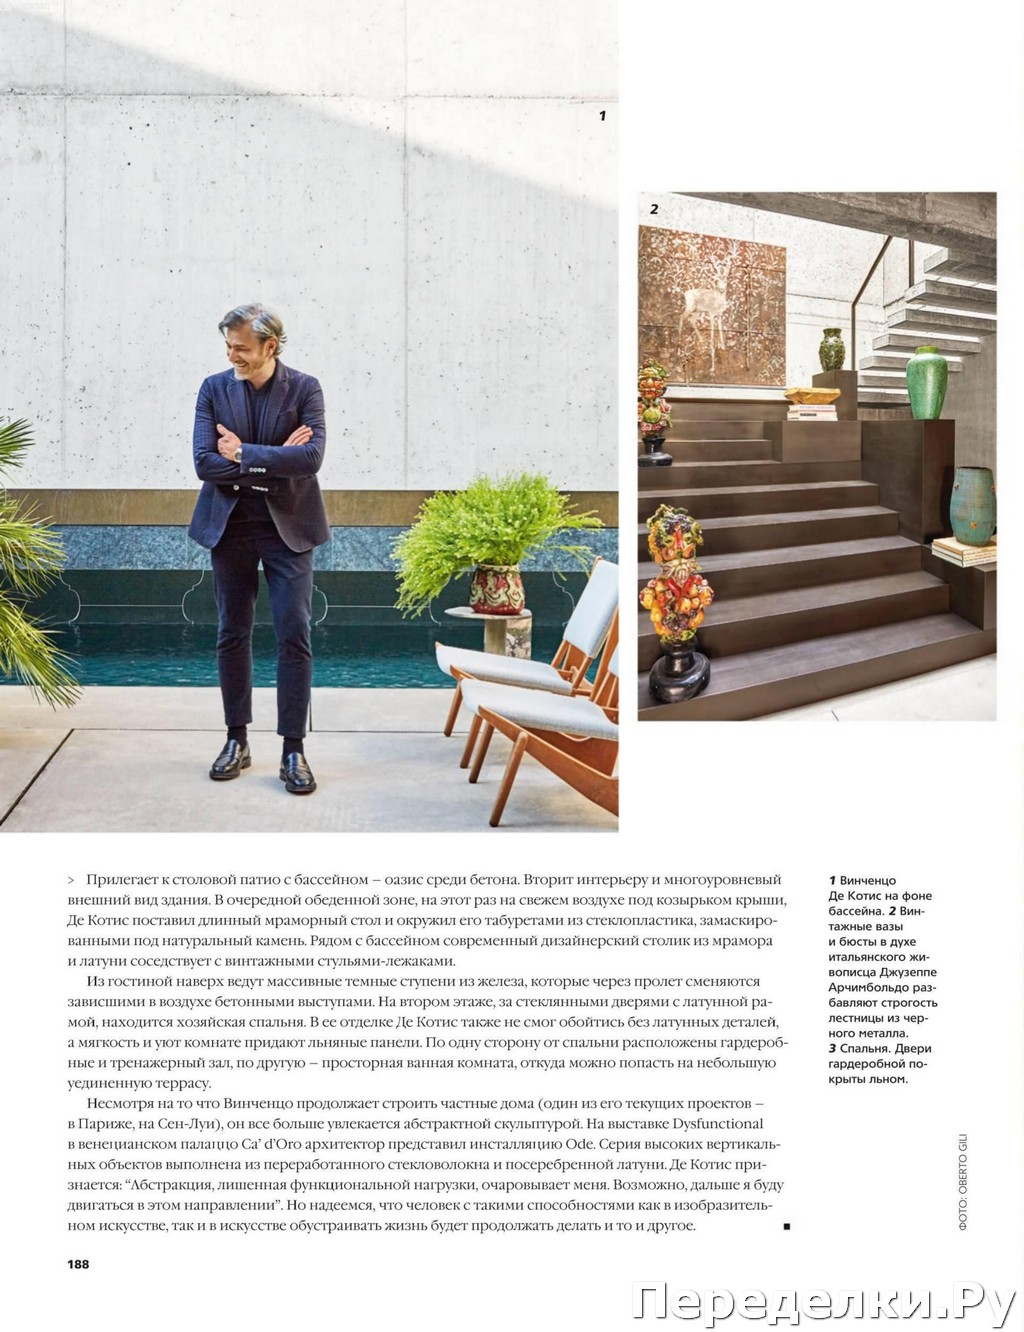 AD Architectural Digest 4 aprel 2020 183